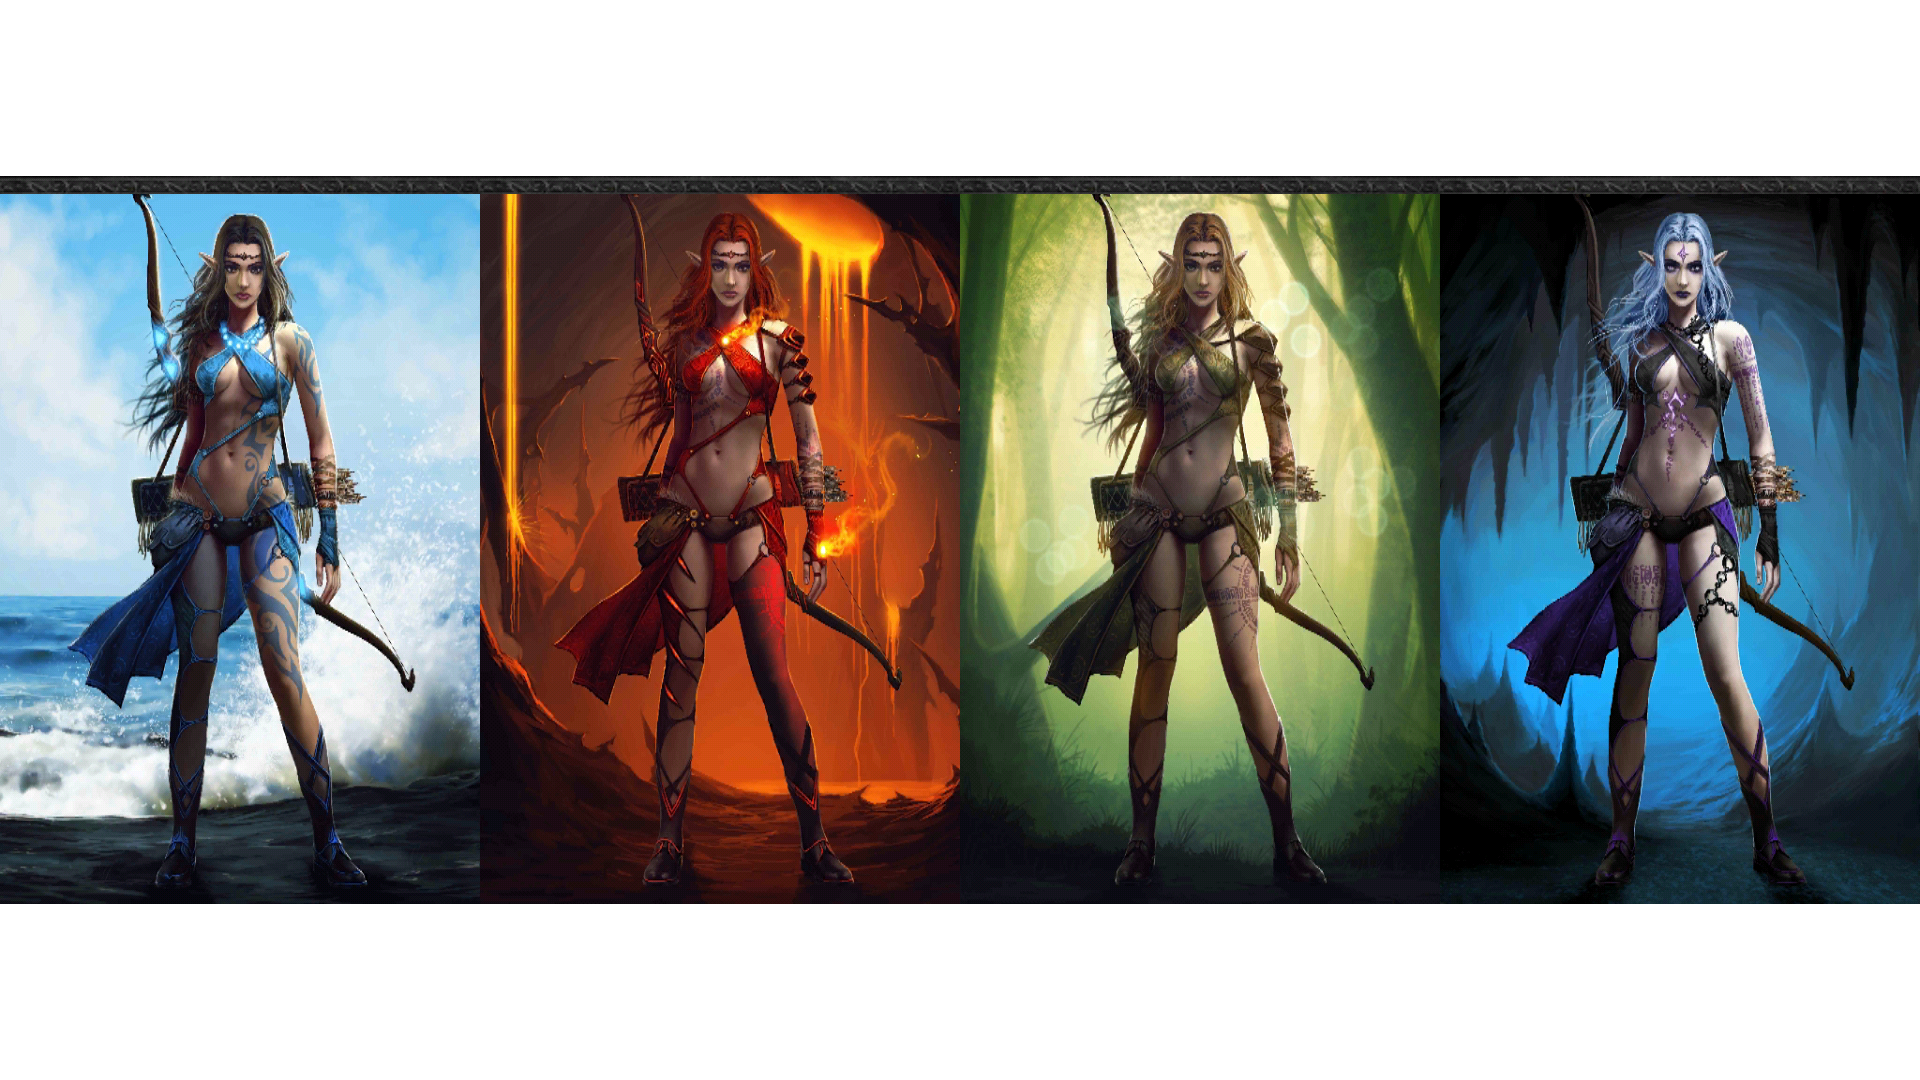 Pubg Wallpaper Png Hd: Four Elemental Archers, Evolution 2 Full HD Wallpaper And